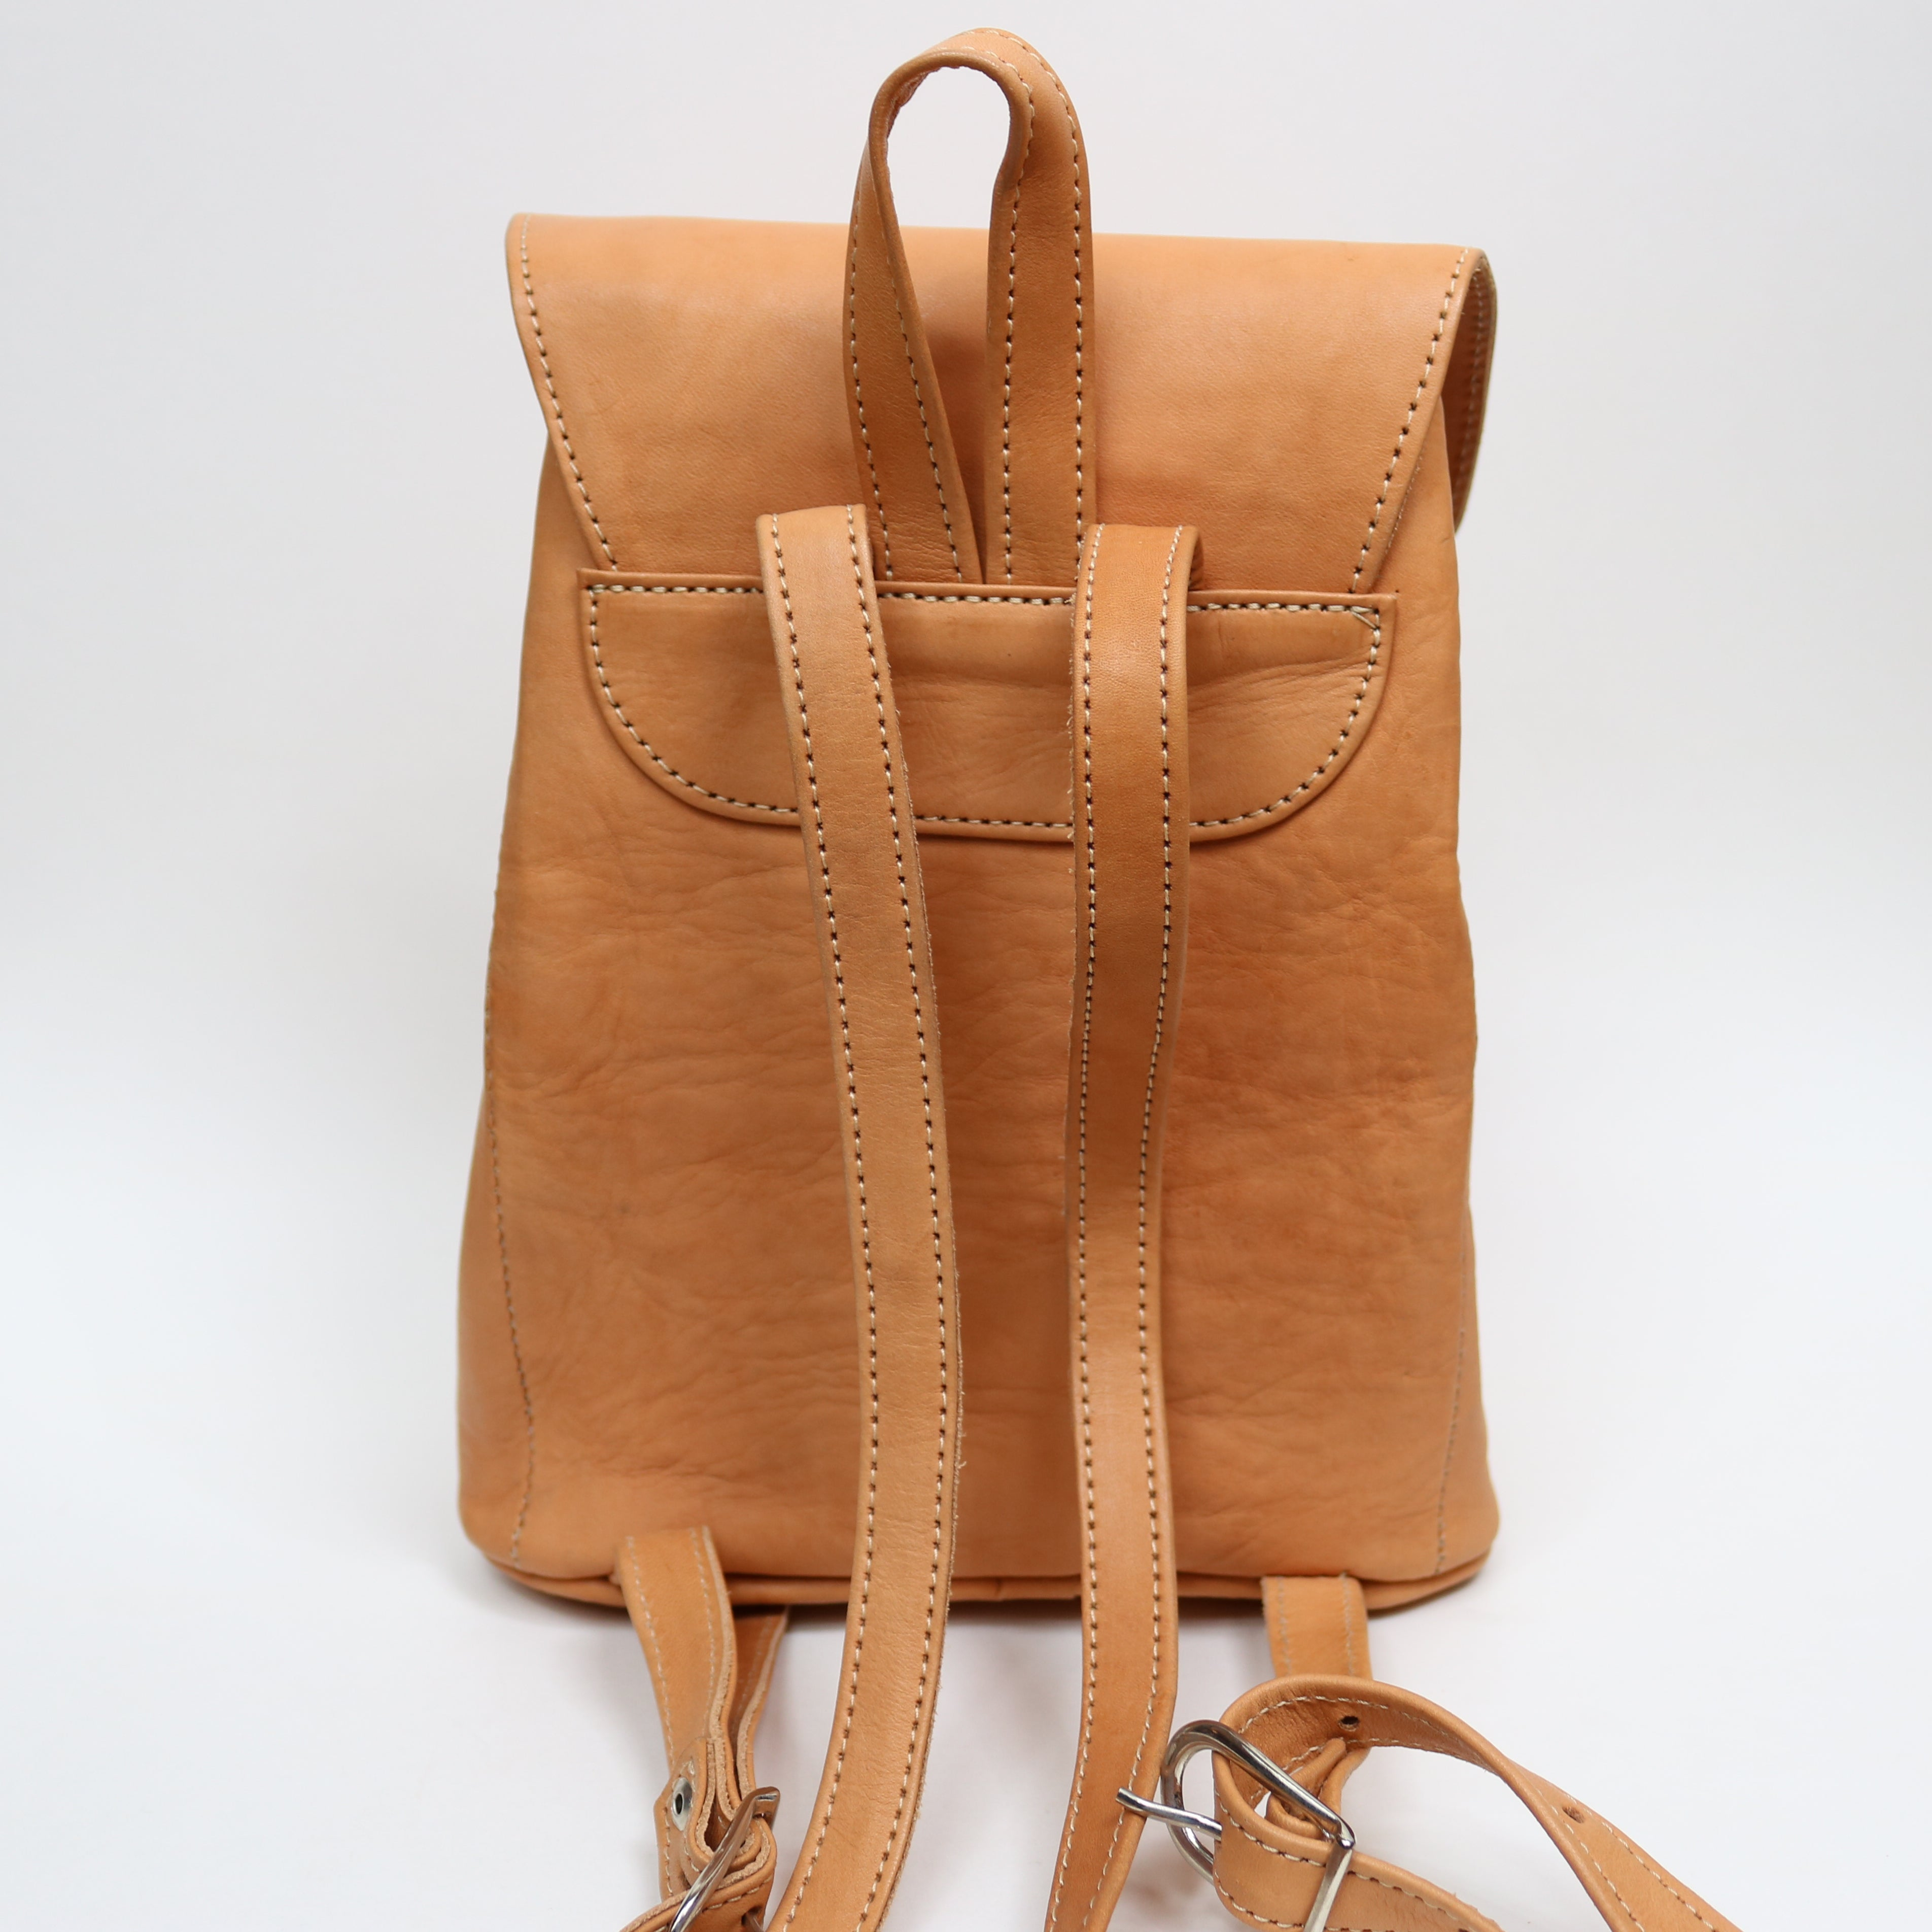 Bati | Women's Tan Leather Backpack | Handmade Leather Goods from Paraguay | Leather Backpacks, Leather Bags, Leather Accessories